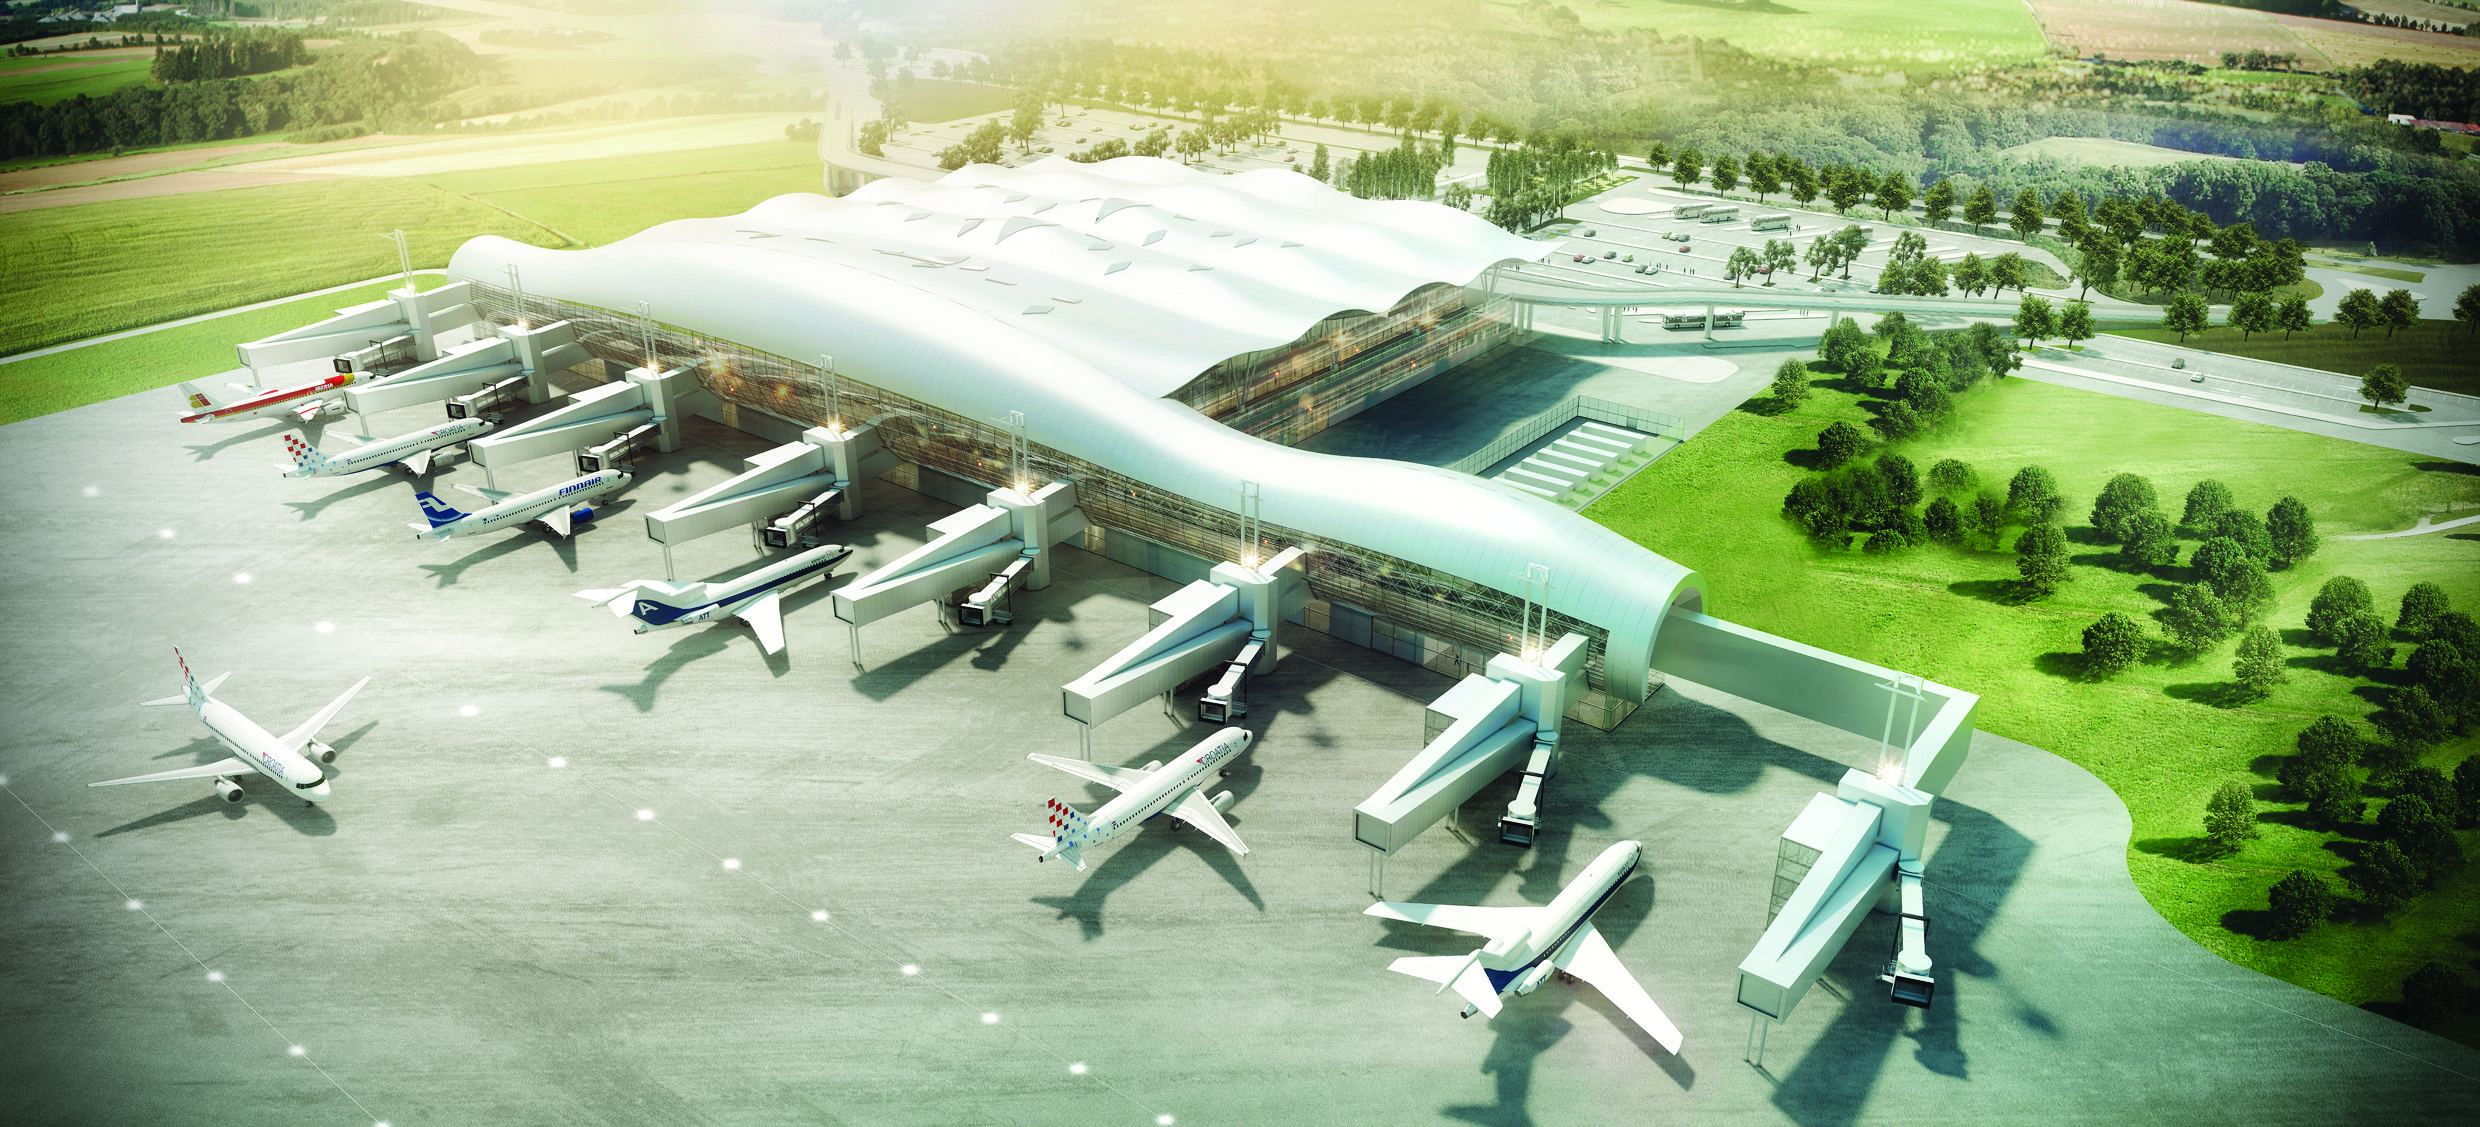 Zagreb Airport Close To Us Flight Deal Kongres Europe Events And Meetings Industry Magazine